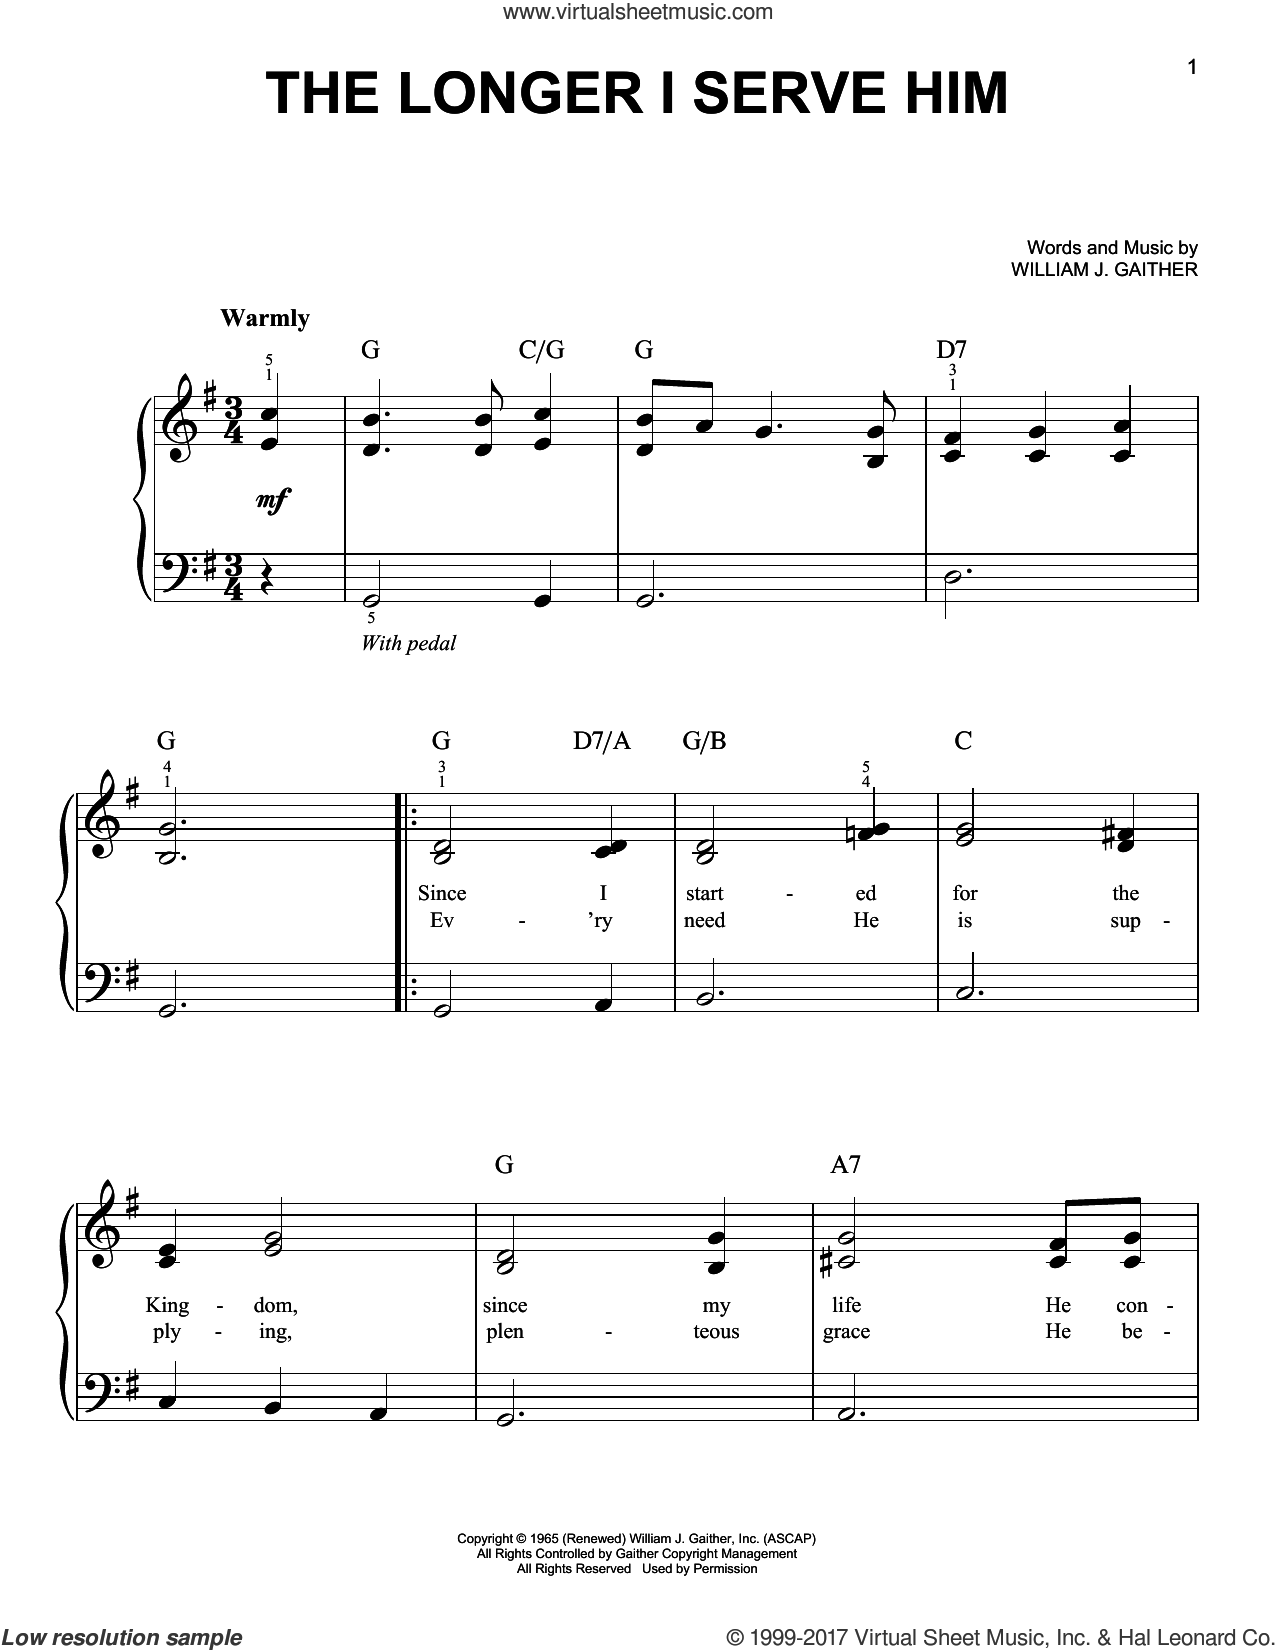 The Longer I Serve Him sheet music for piano solo by William J. Gaither, easy. Score Image Preview.